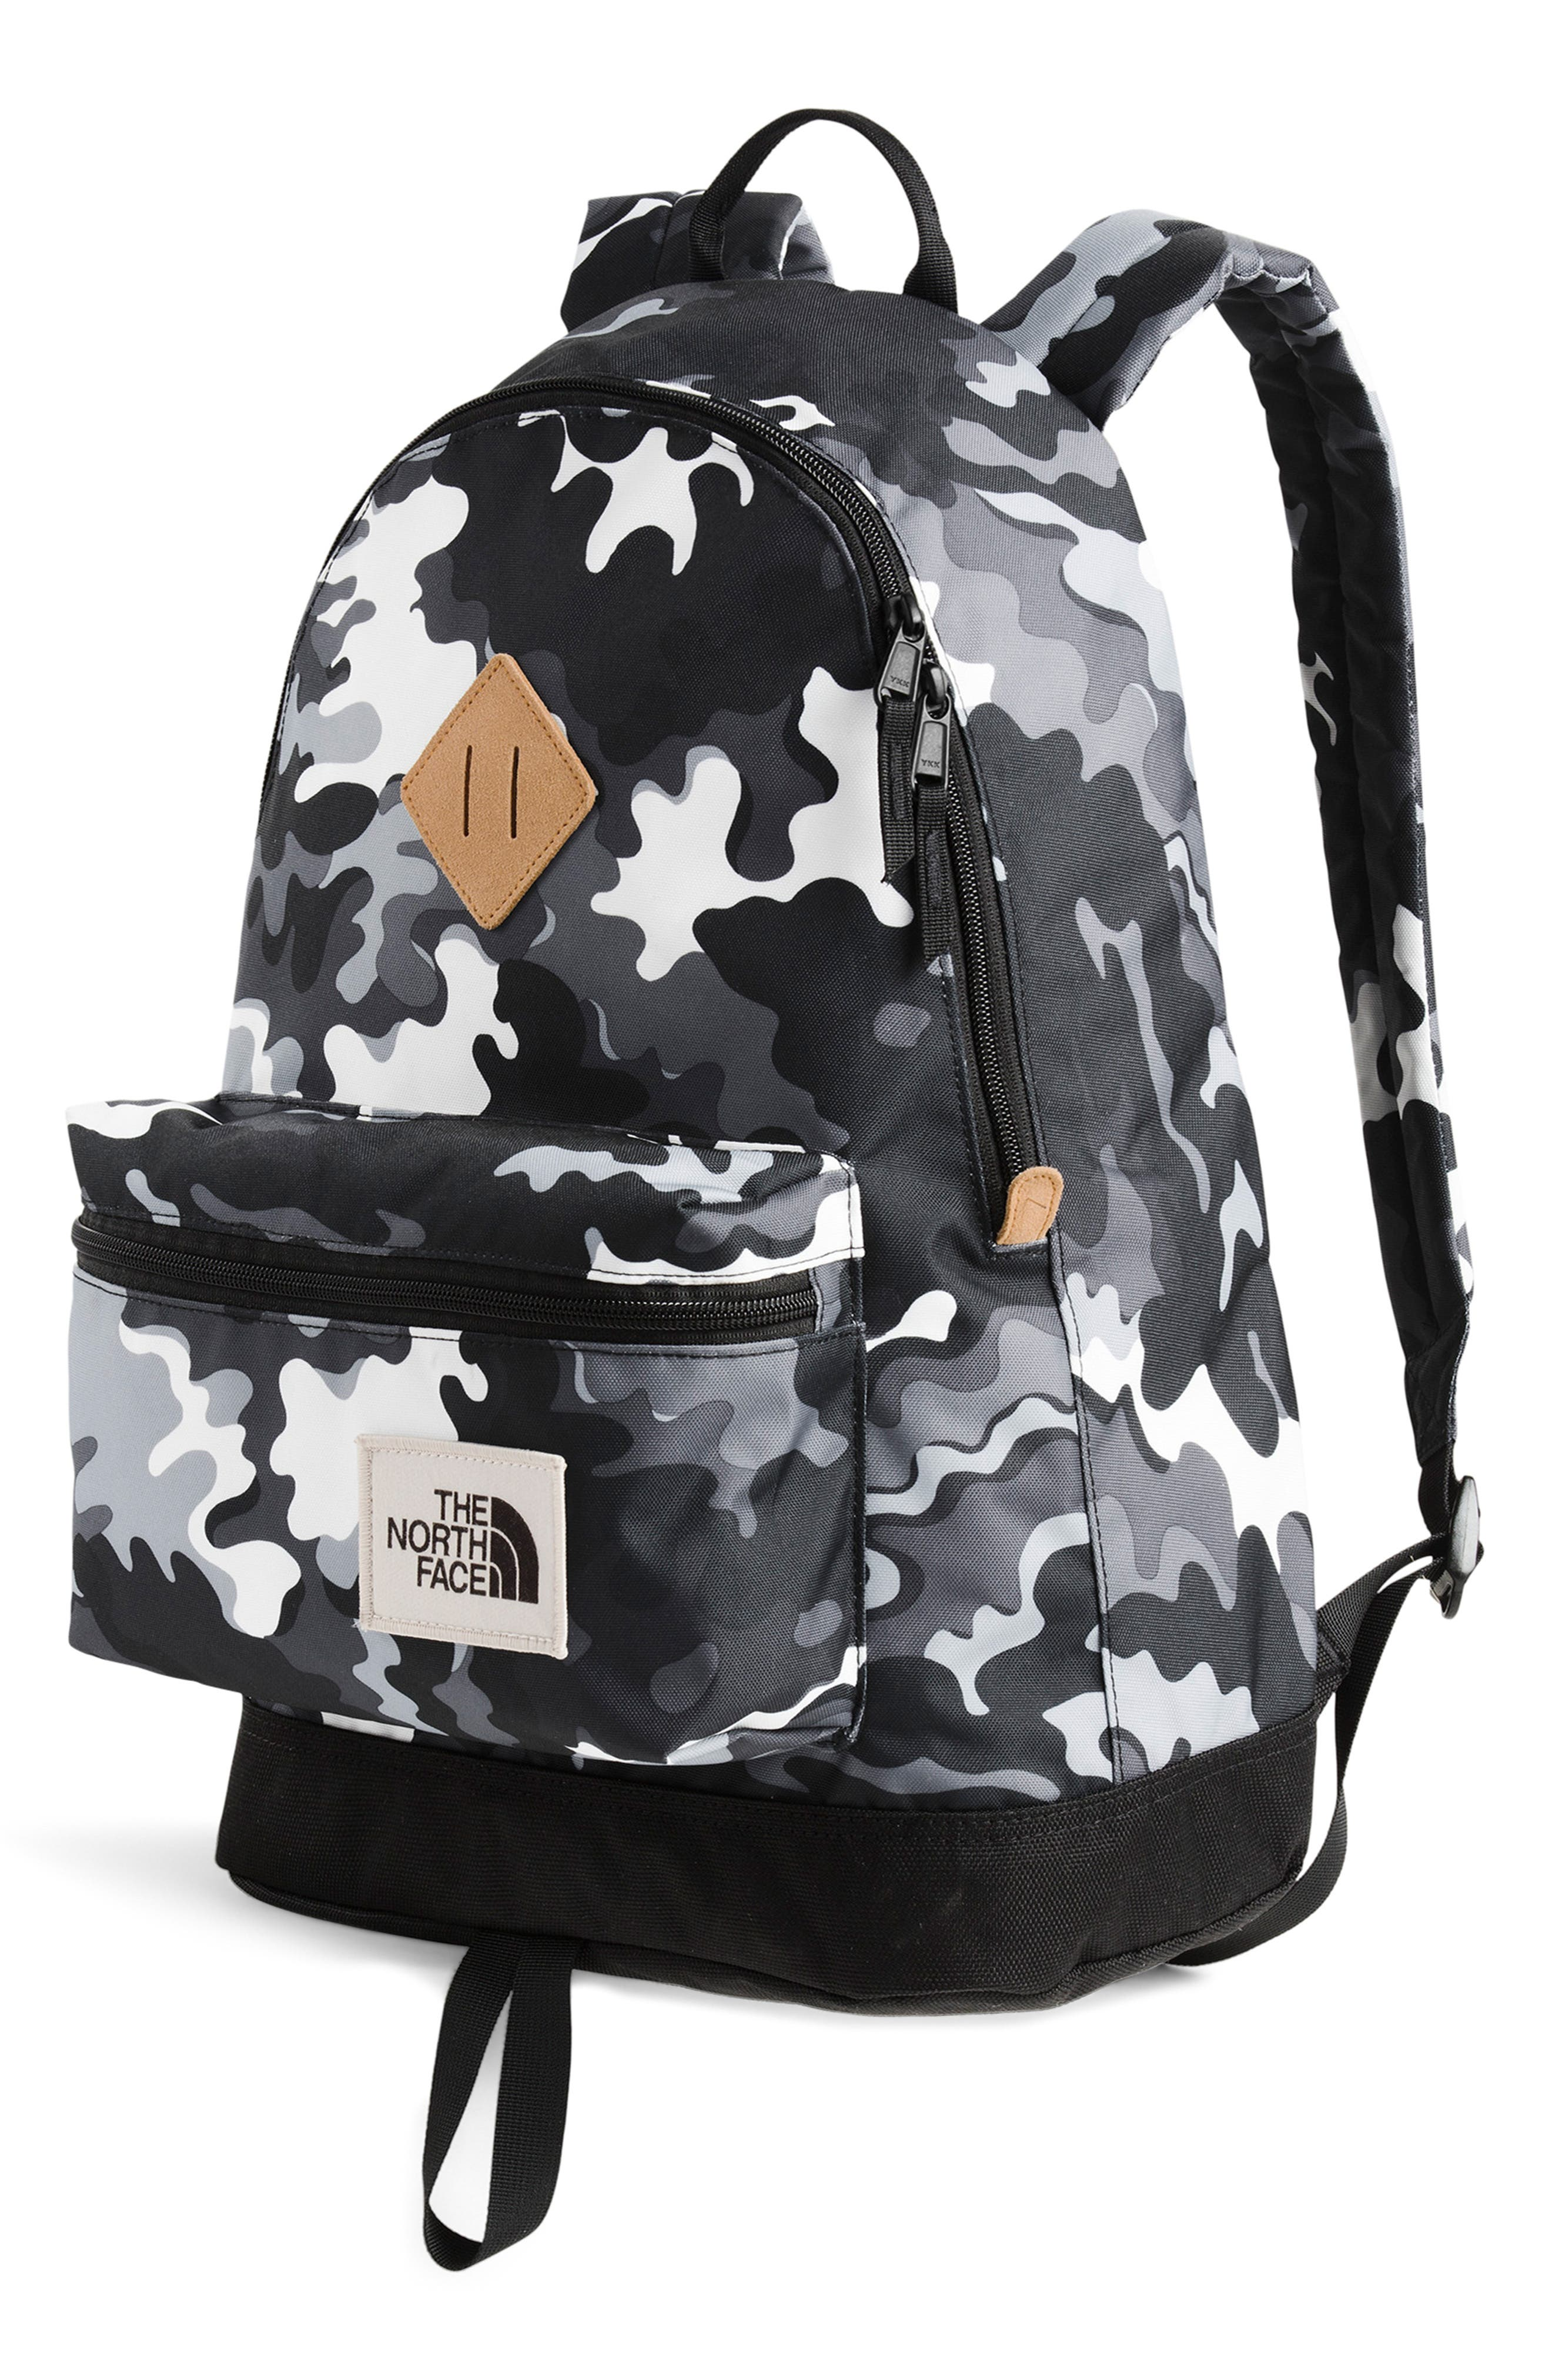 The North Face Berkeley Backpack - Black